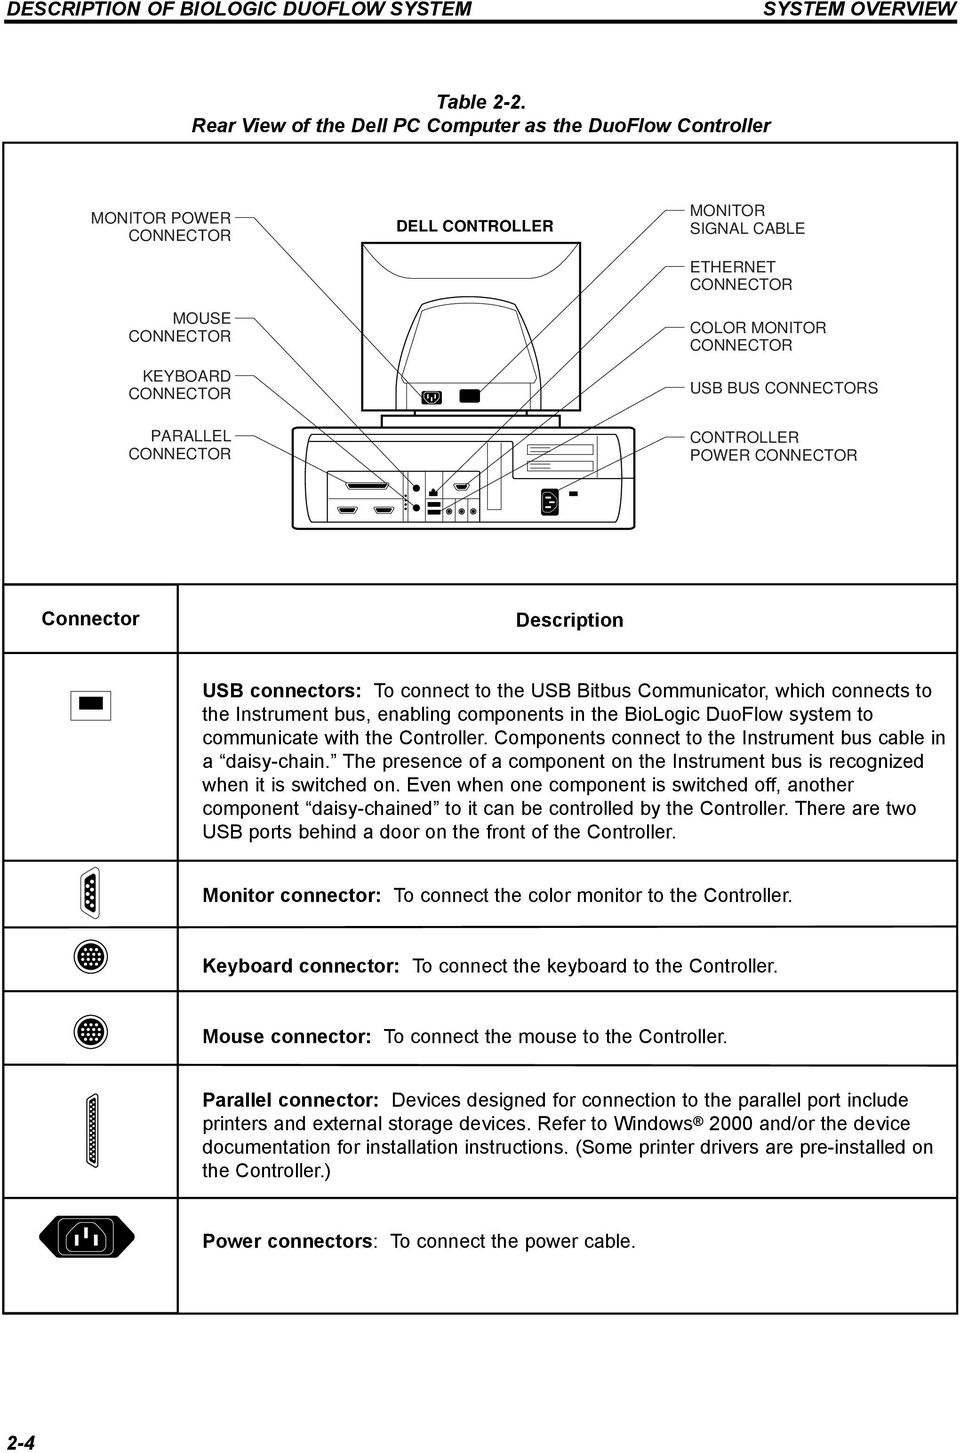 MONITOR CONNECTOR USB BUS CONNECTORS CONTROLLER POWER CONNECTOR Connector Description USB connectors: To connect to the USB Bitbus Communicator, which connects to the Instrument bus, enabling